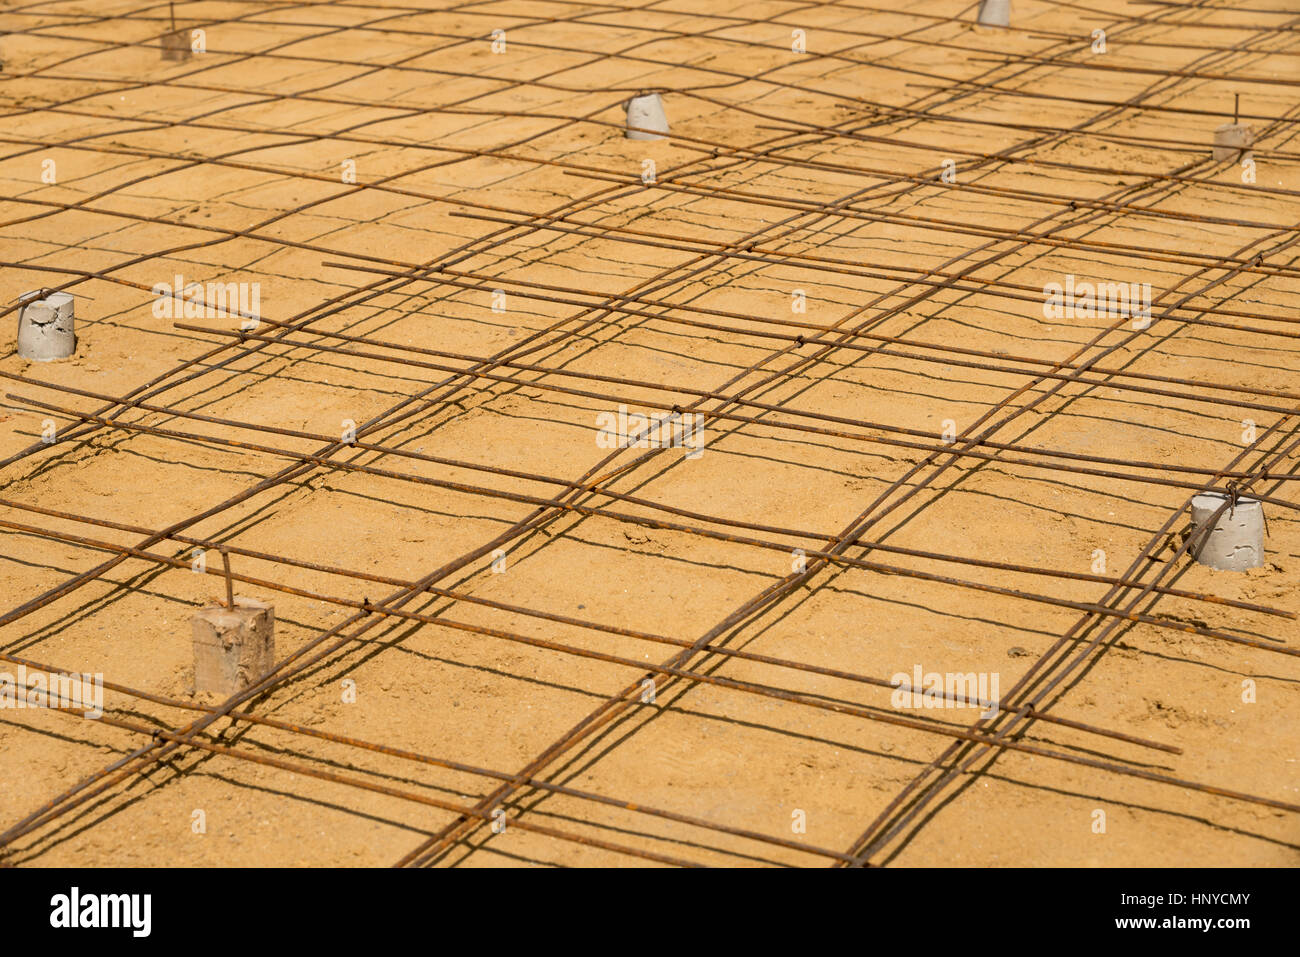 The steer wire mesh for concrete floor in construction job